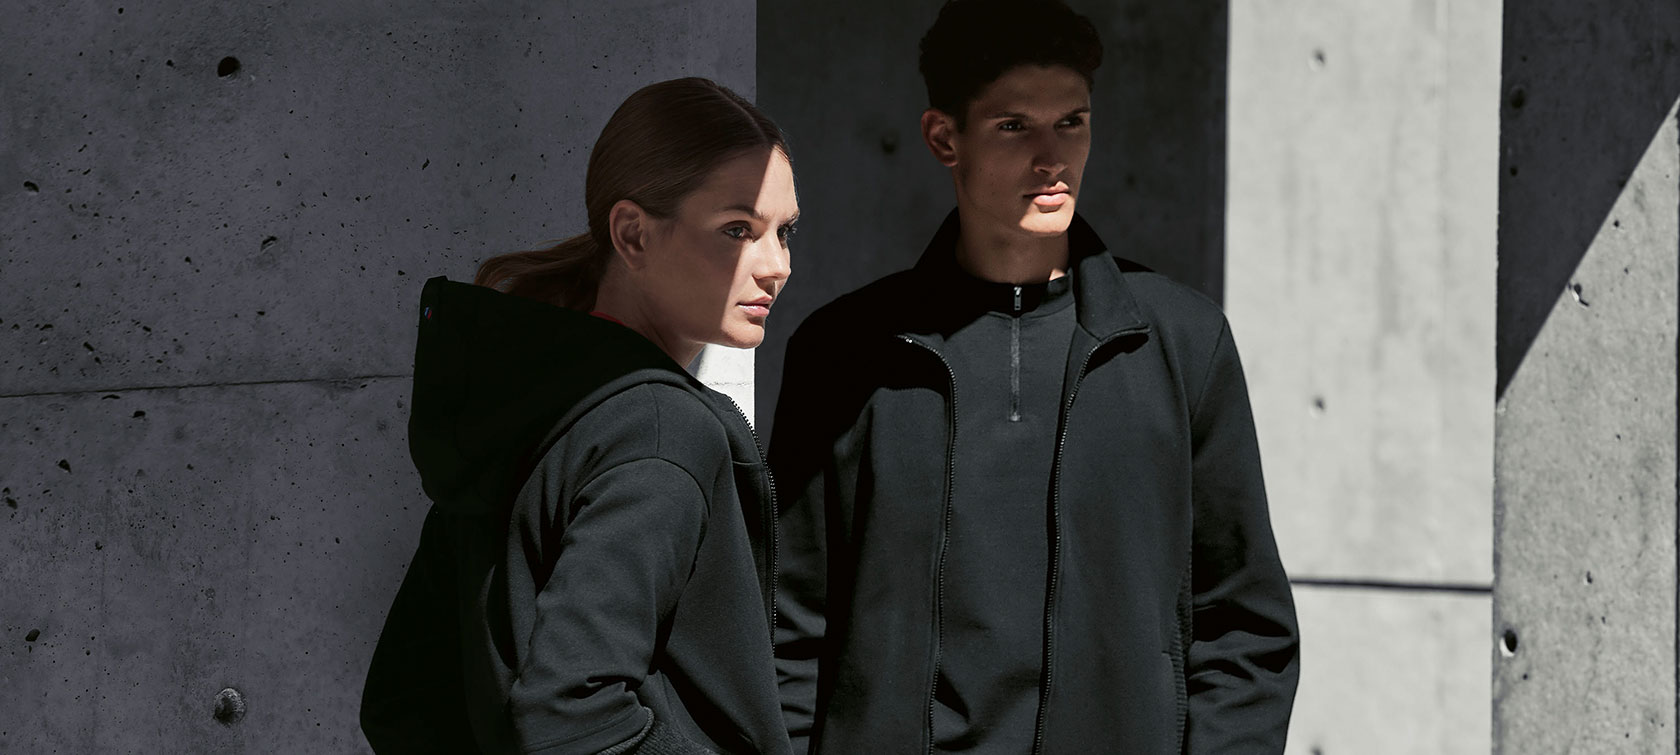 A couple is standing in the shadow. A woman is presenting the BMW M Sweat Jacket for ladies and a man is wearing the BMW M Sweat Jacket for men.